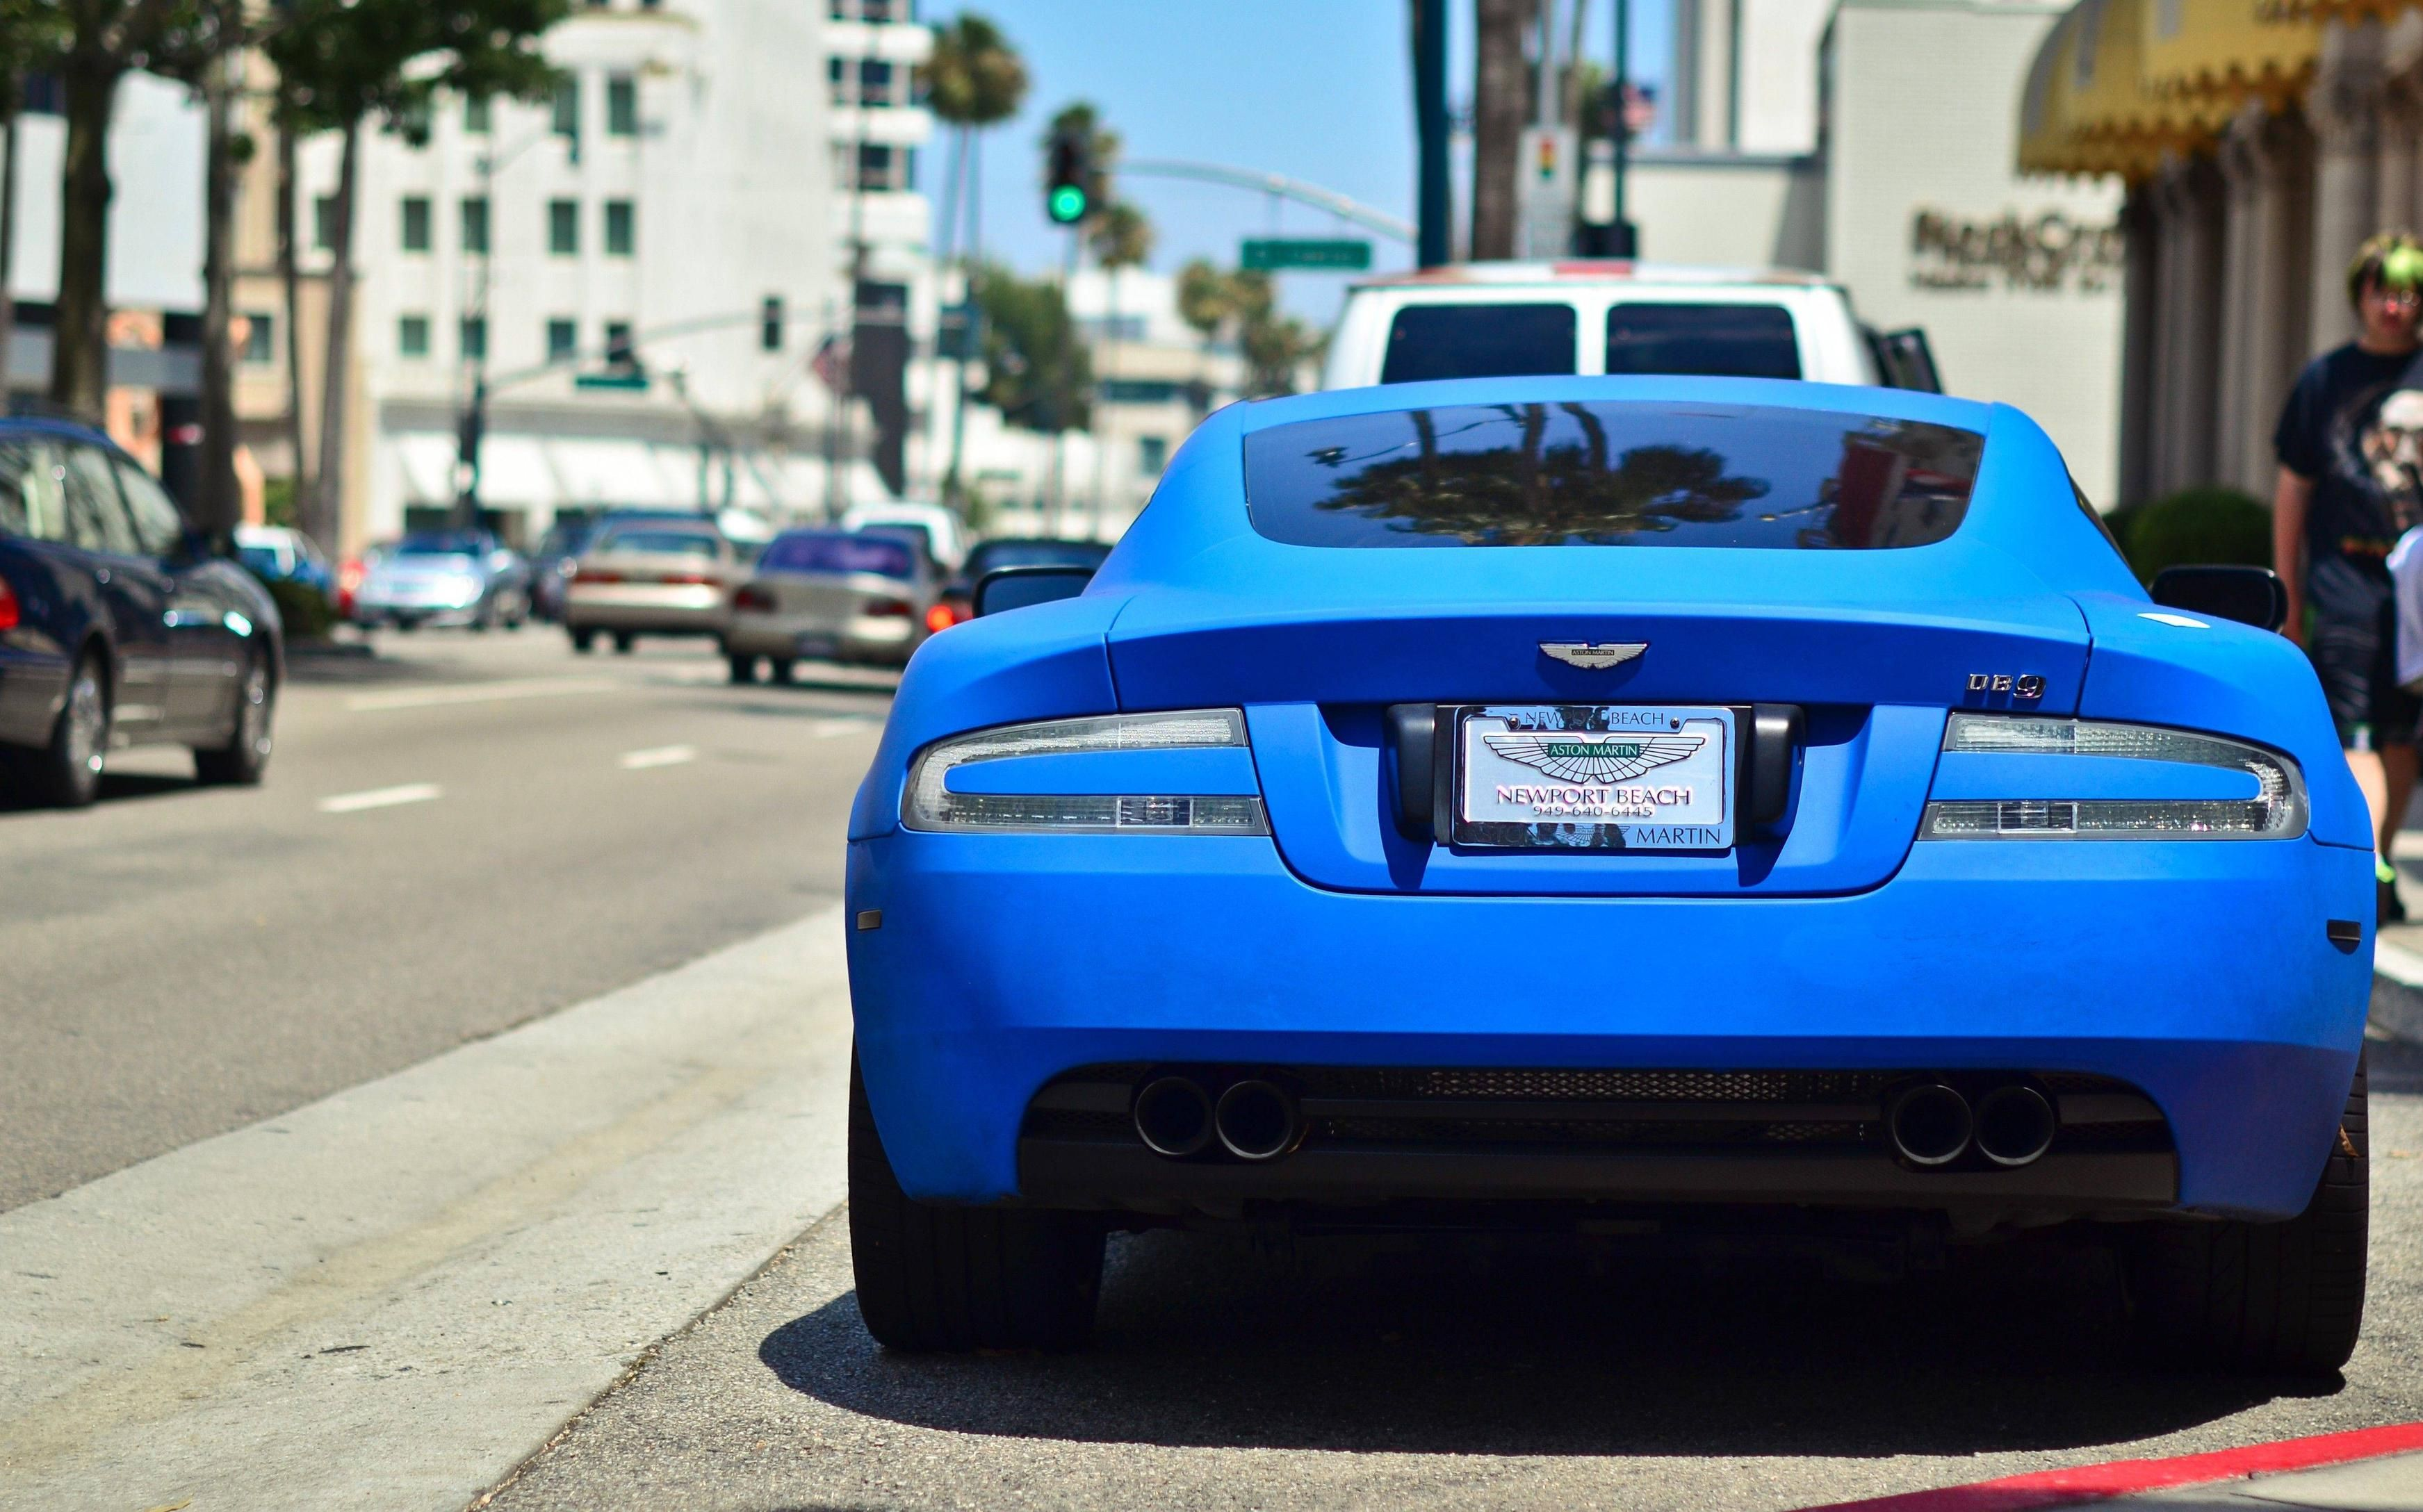 772d1bf324c9a3181ab0331a246ea244 Interesting Info About aston Martin Db9 Price with Gorgeous Gallery Cars Review